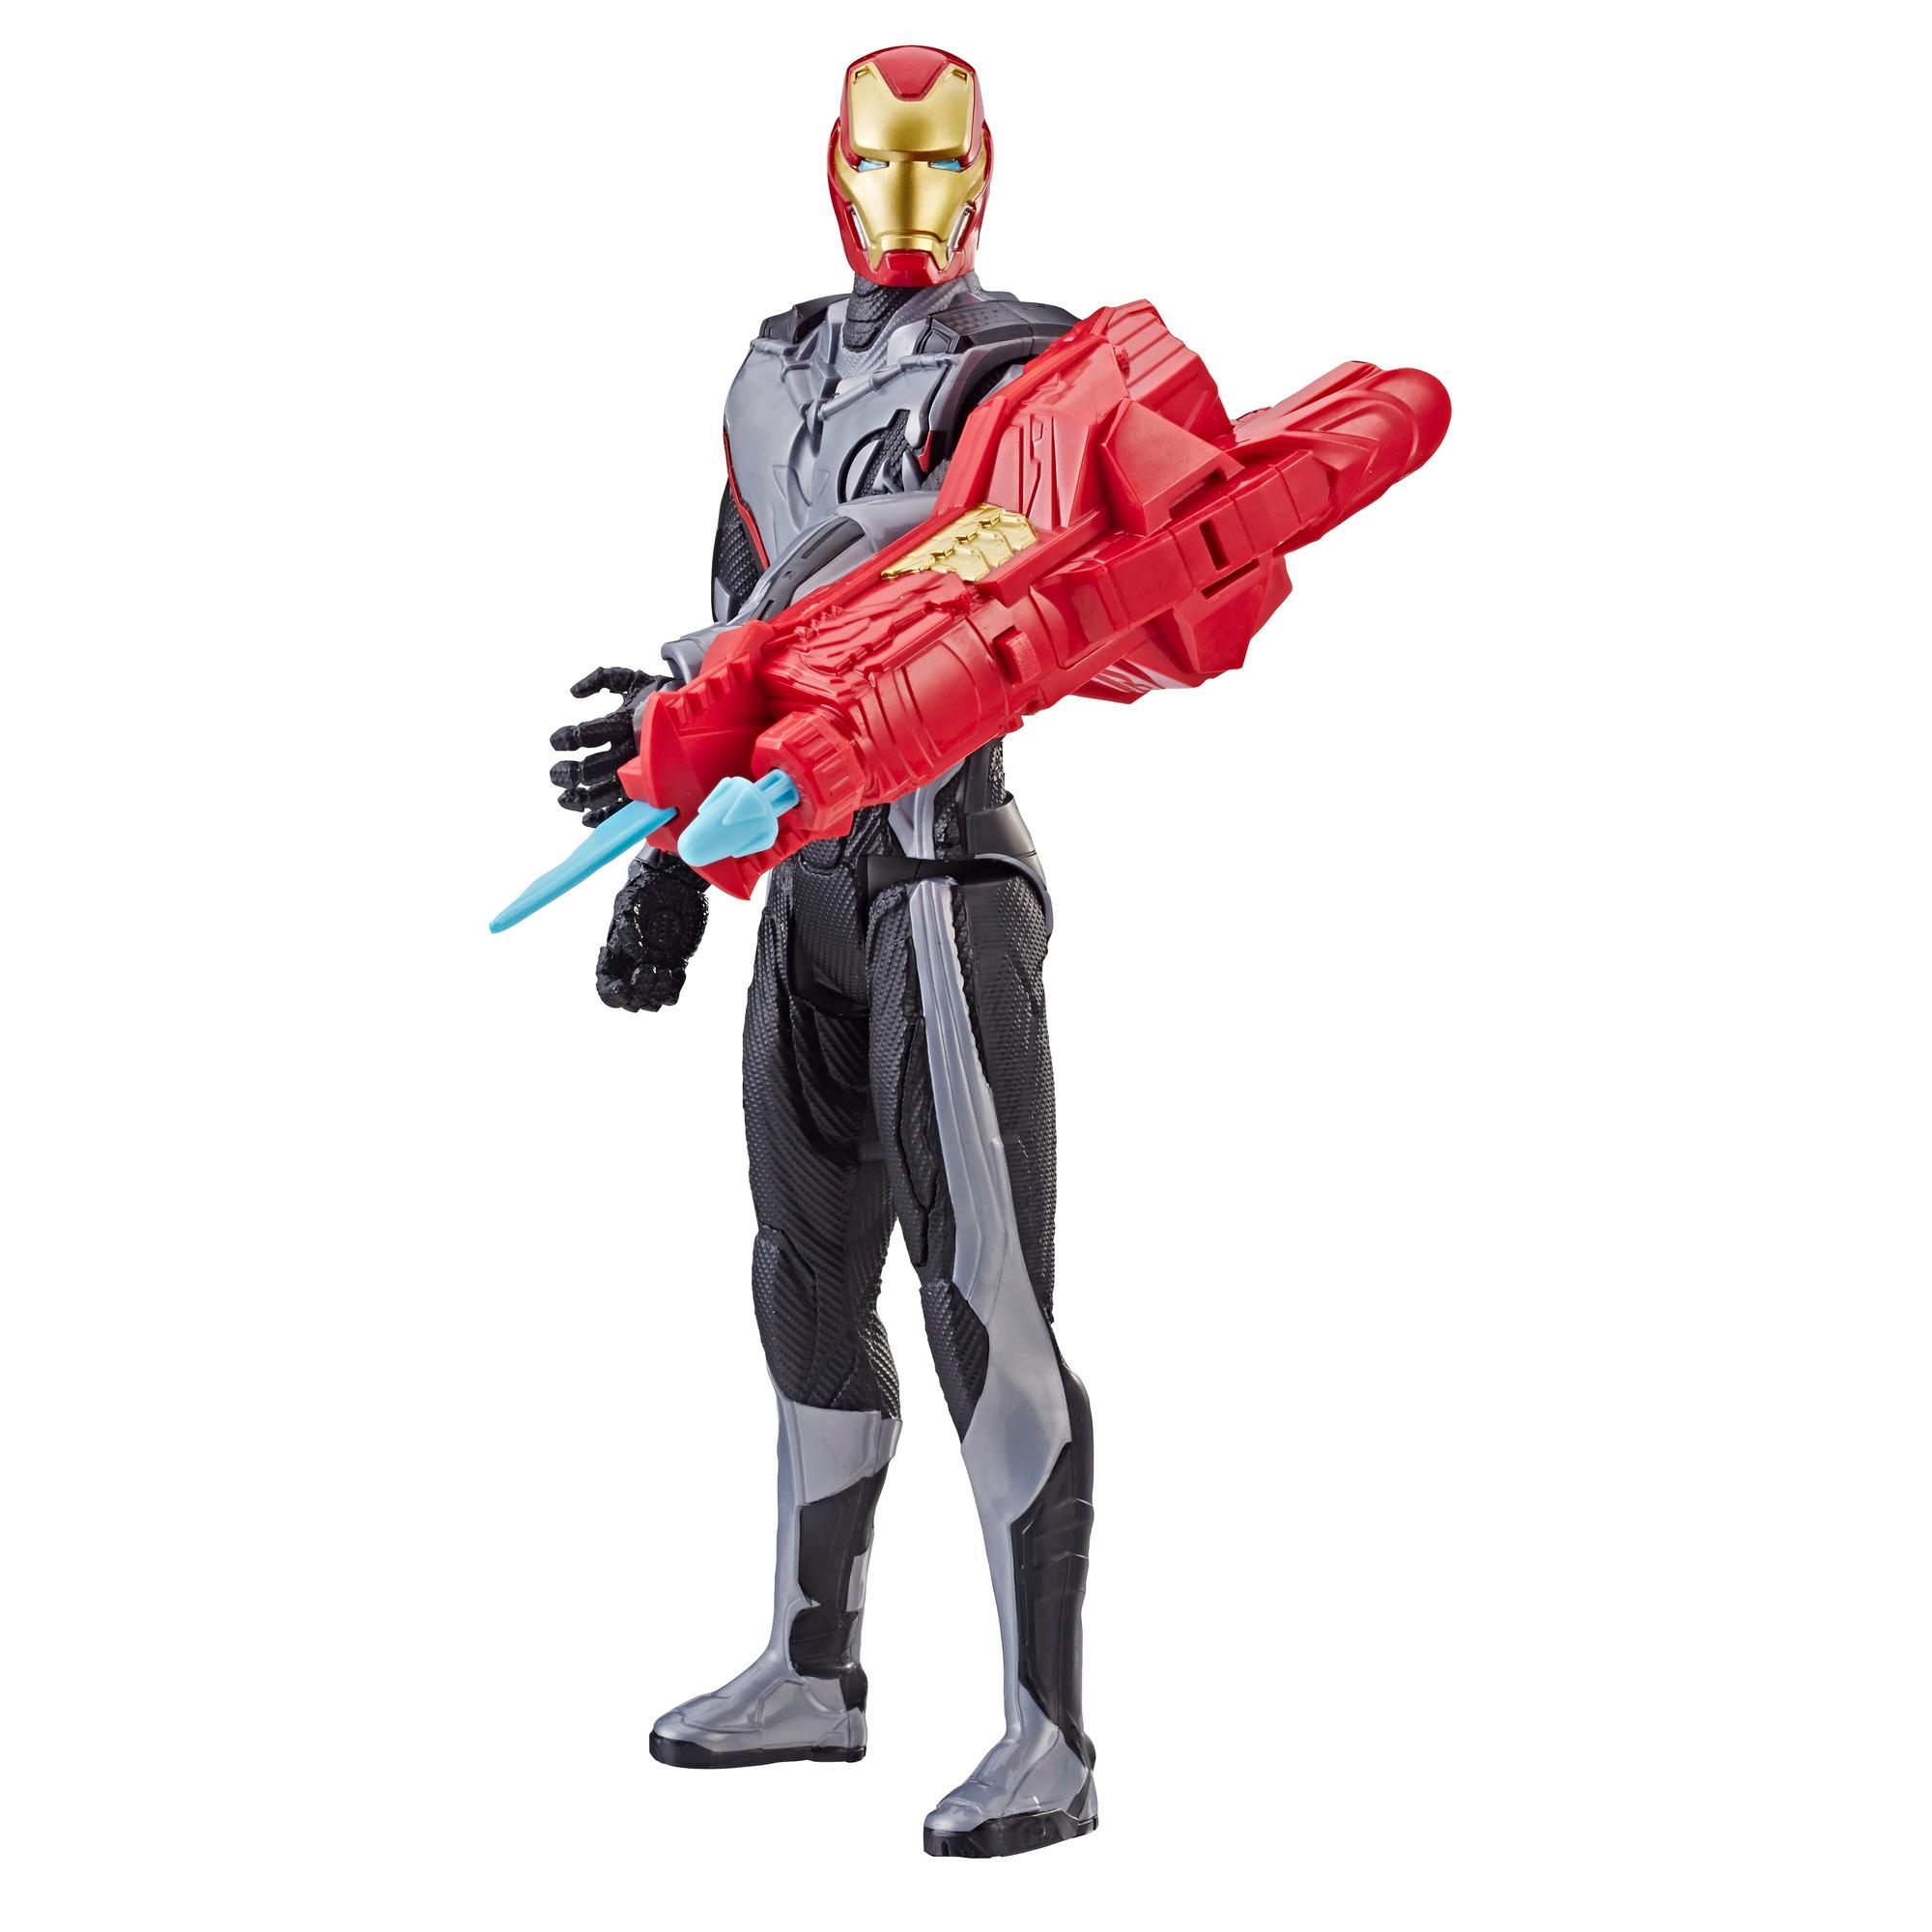 Marvel Avengers: Endgame Titan Hero Power FX Iron Man